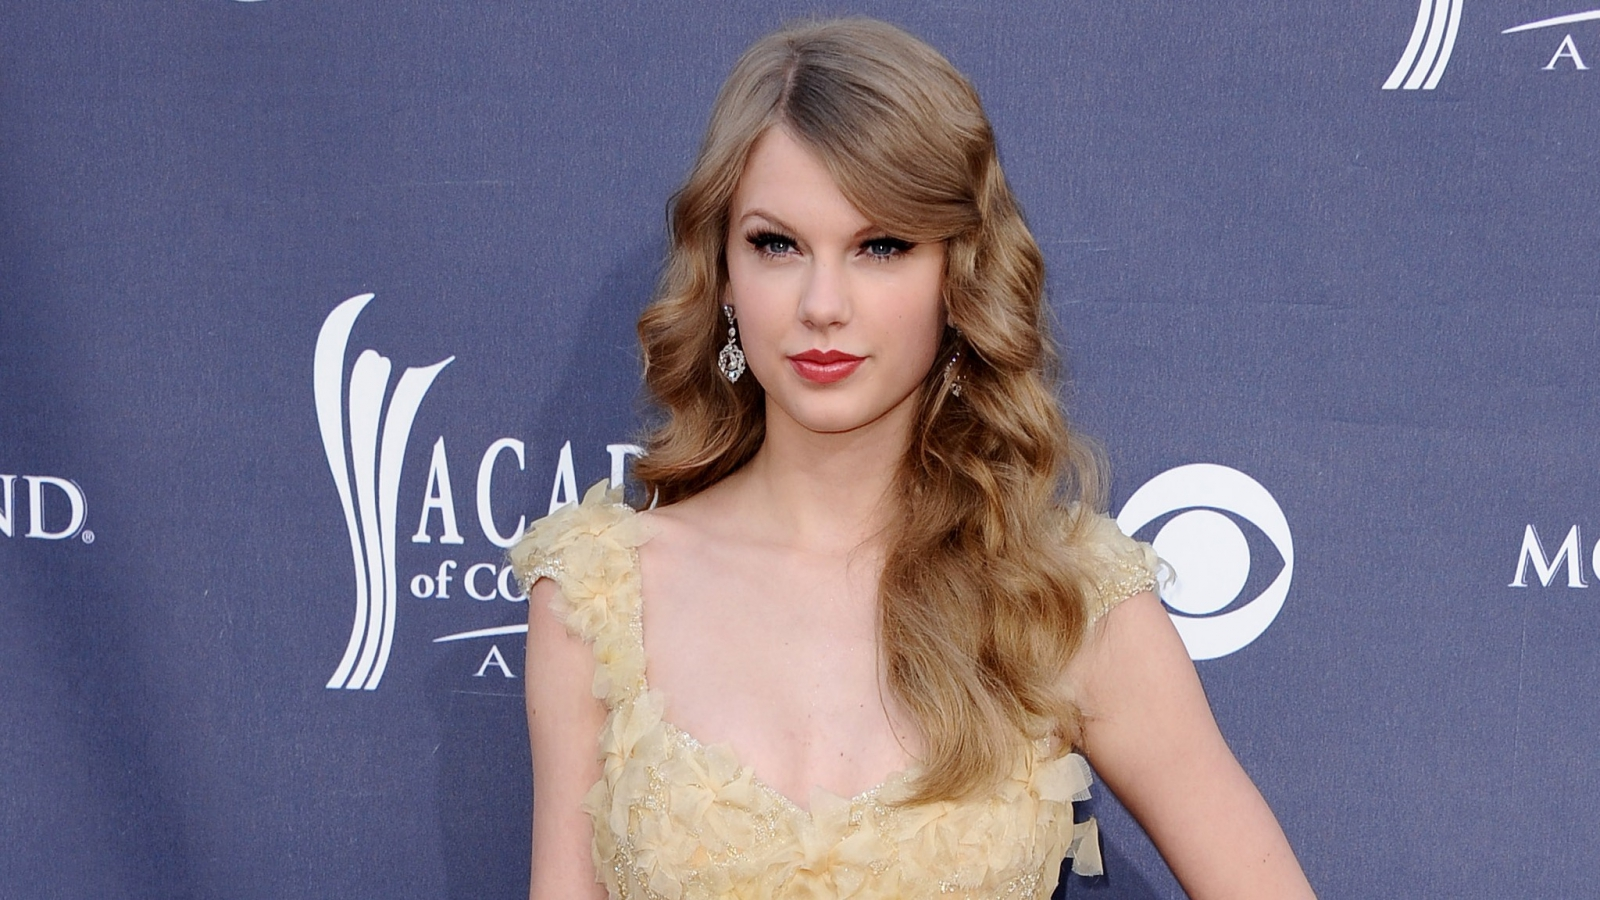 taylor swift red carpet wallpaper and background image | 1600x900